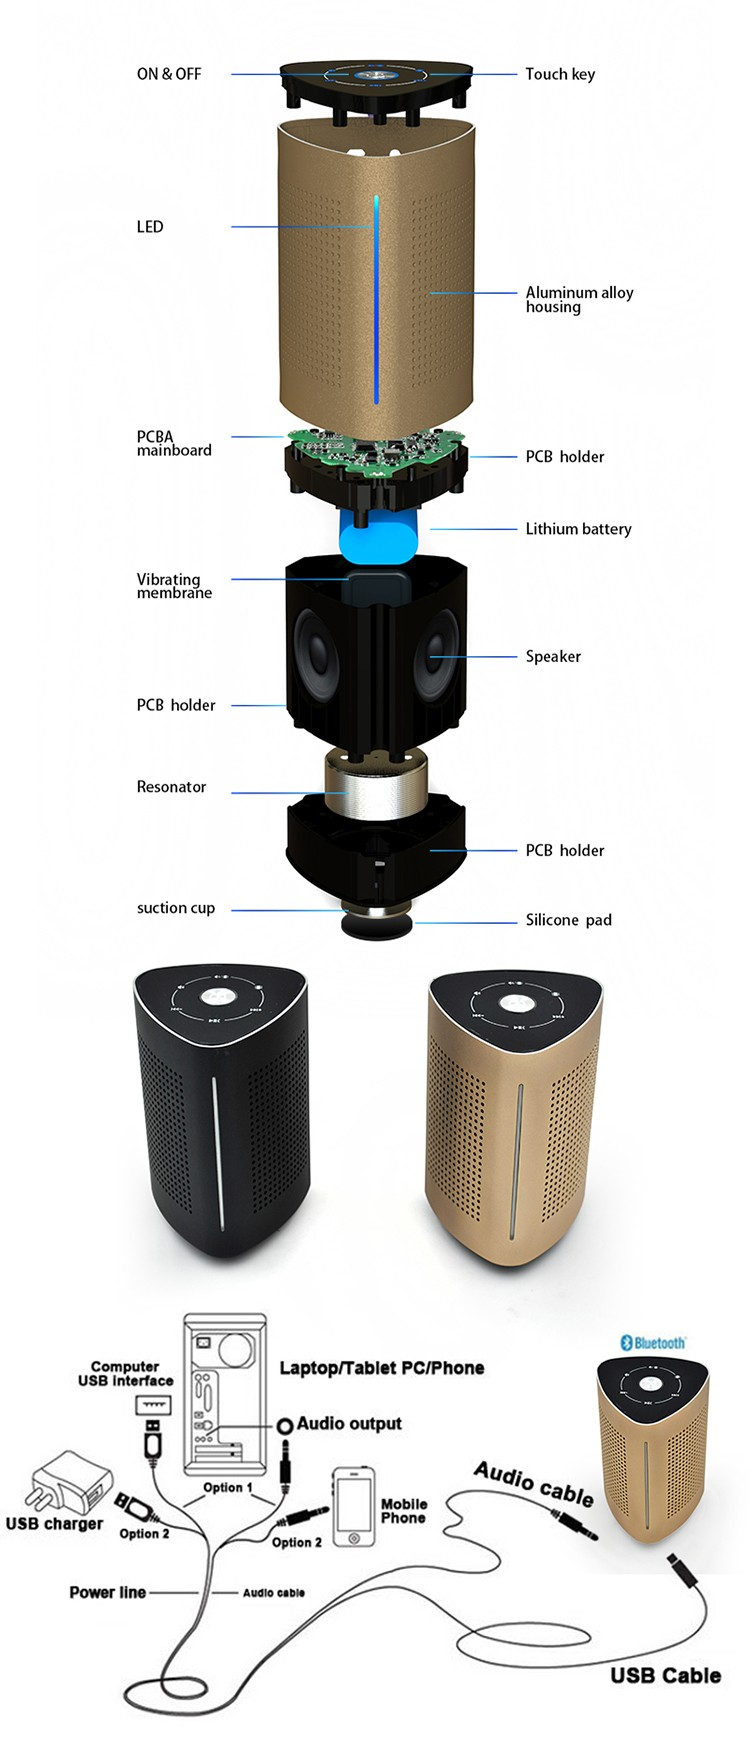 High Power Vibration Resonance bluetooth Speaker With 360 Degree Hifi Stereo ampifiers